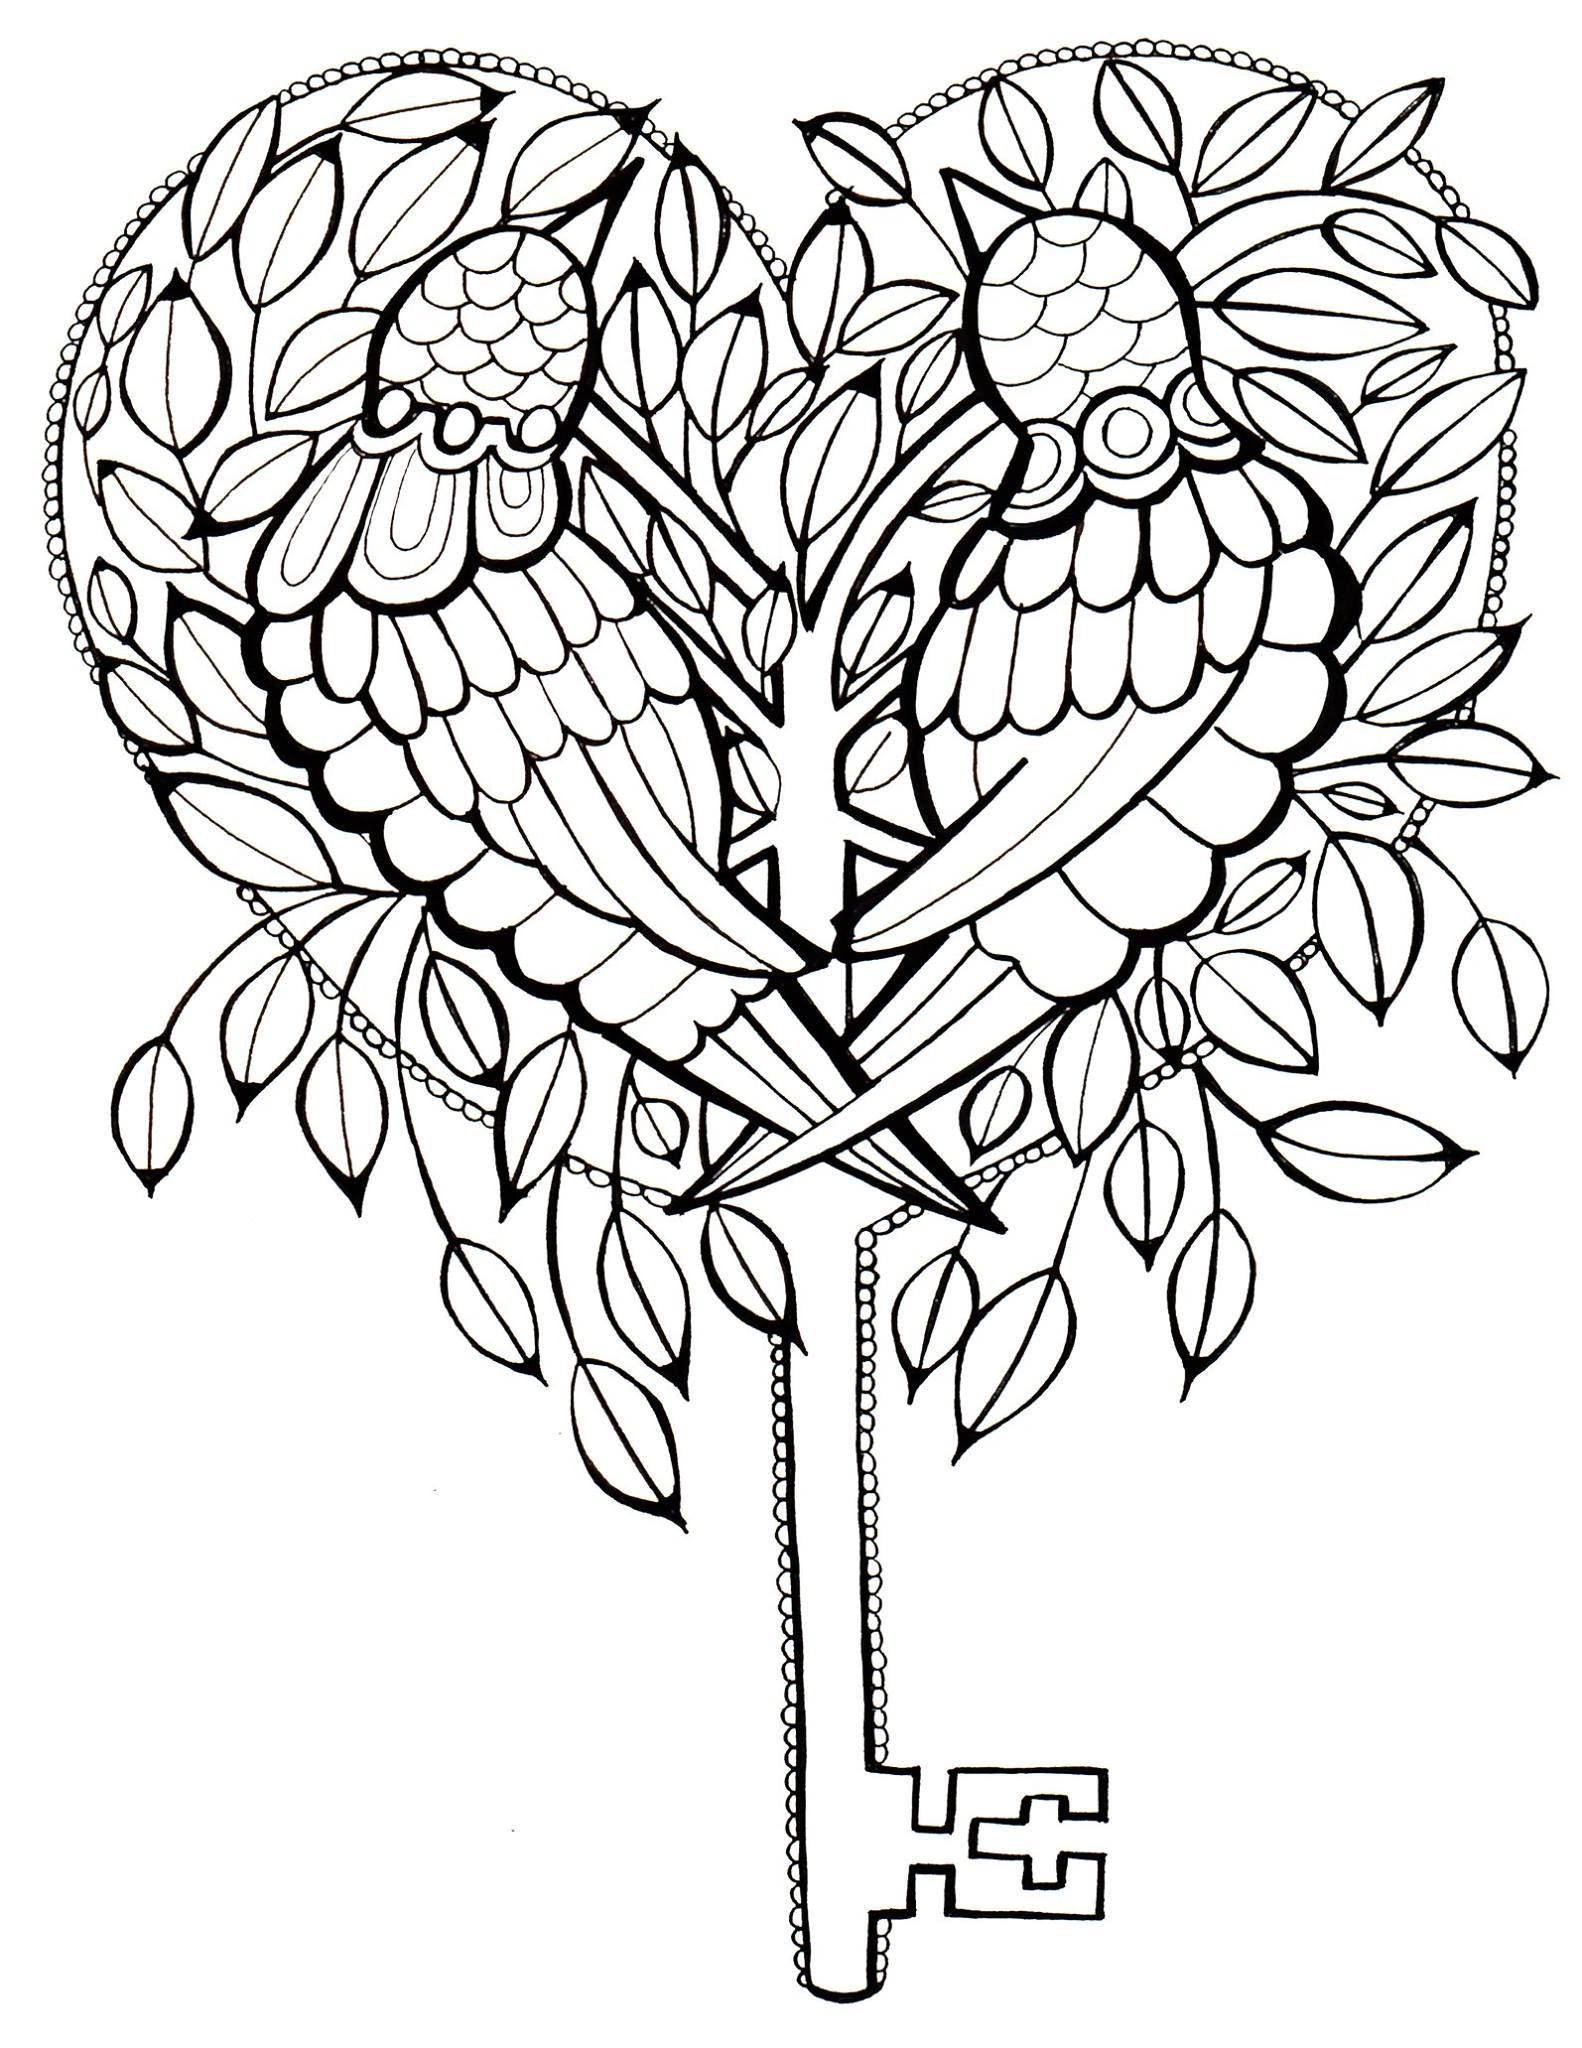 Pin by myrna sawyer on patterns pinterest coloriage colorier and coloriage adulte - Mandala adulte ...